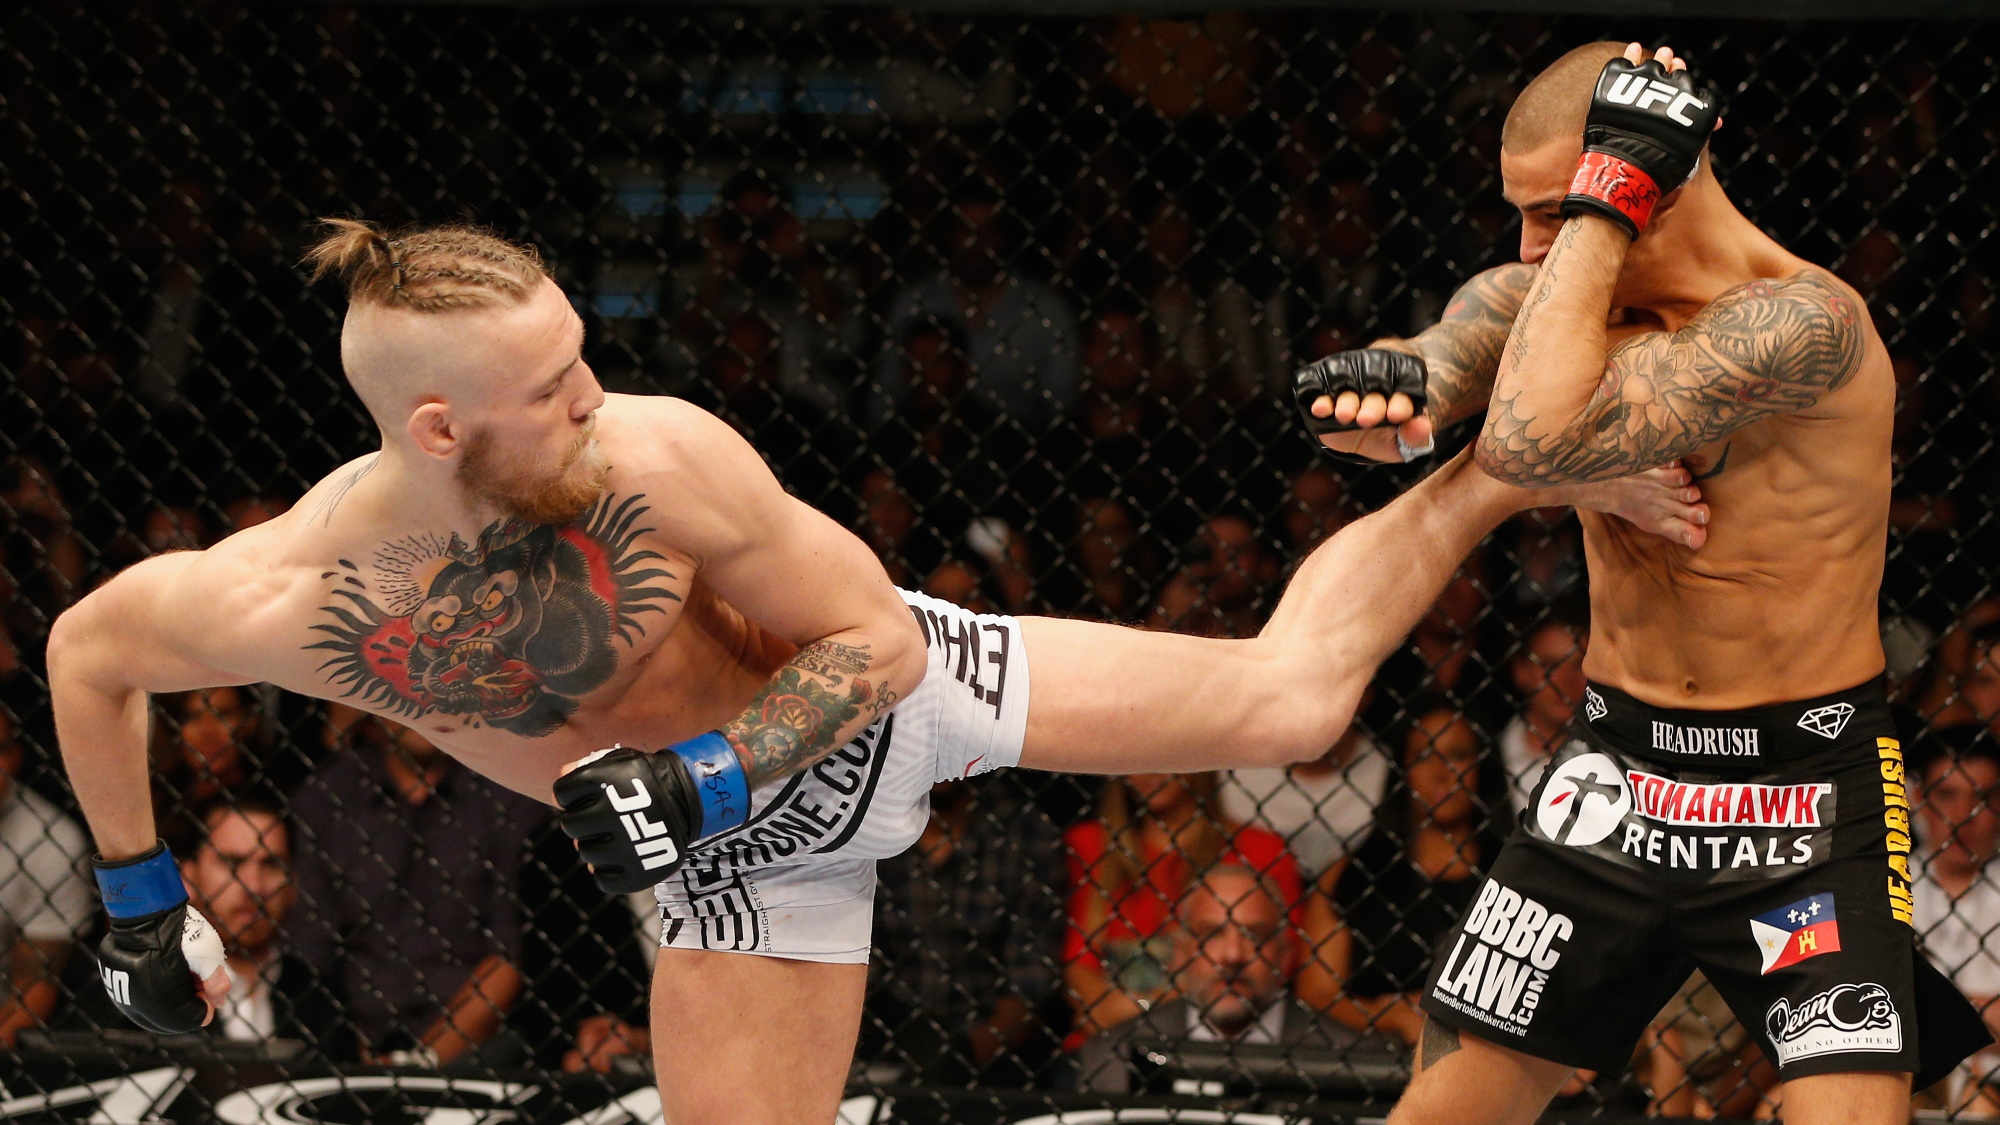 McGregor vs Poirier 2 live stream: date, time and how to watch UFC 257 from anywhere